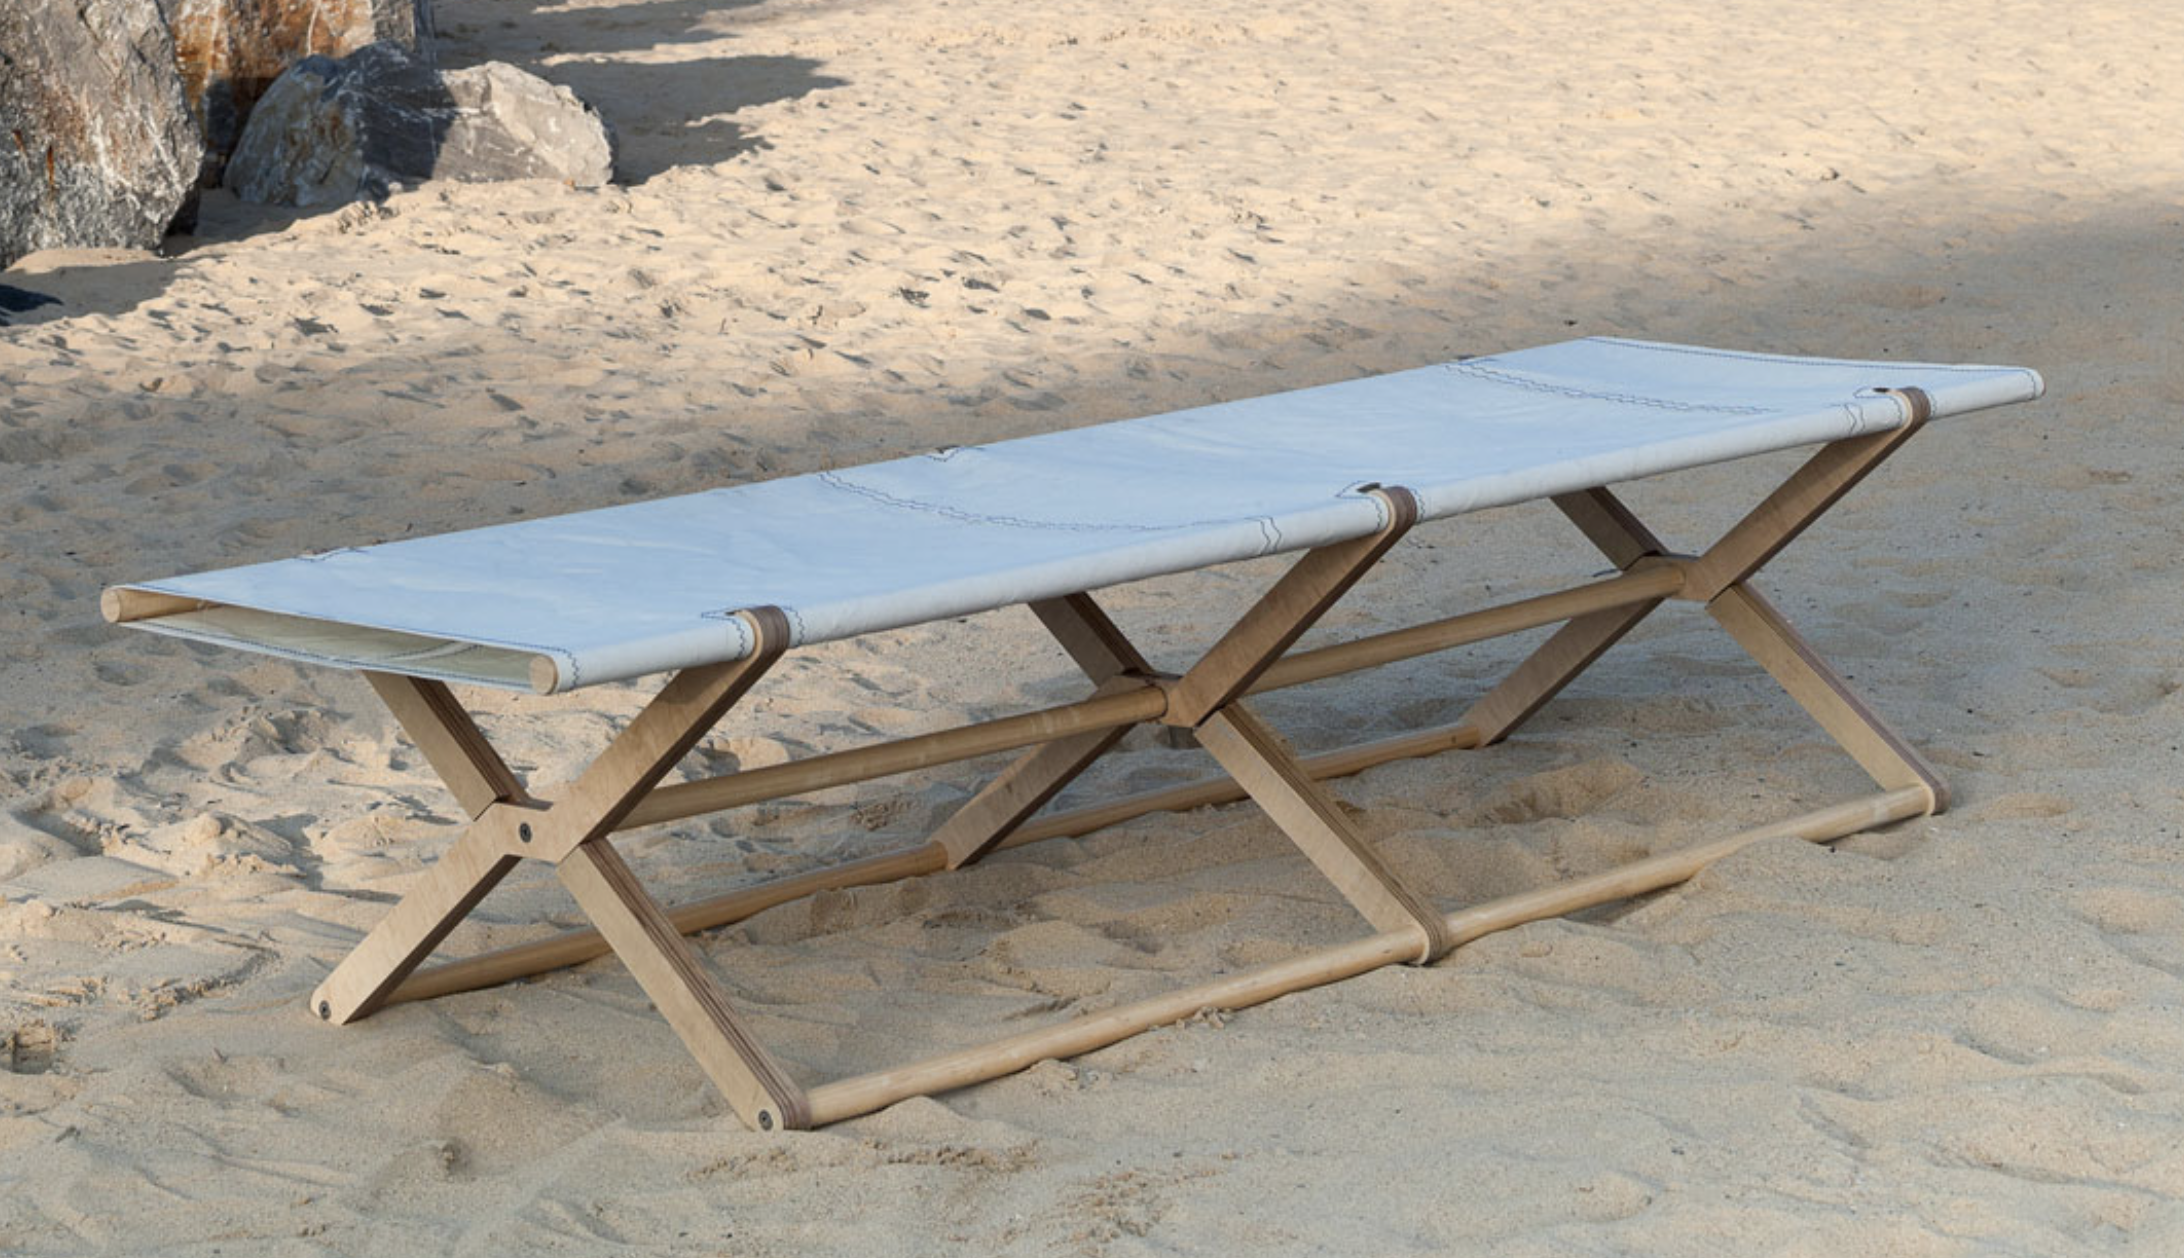 Coy foldable daybed from Dvelas, made from recycled sails and plywood